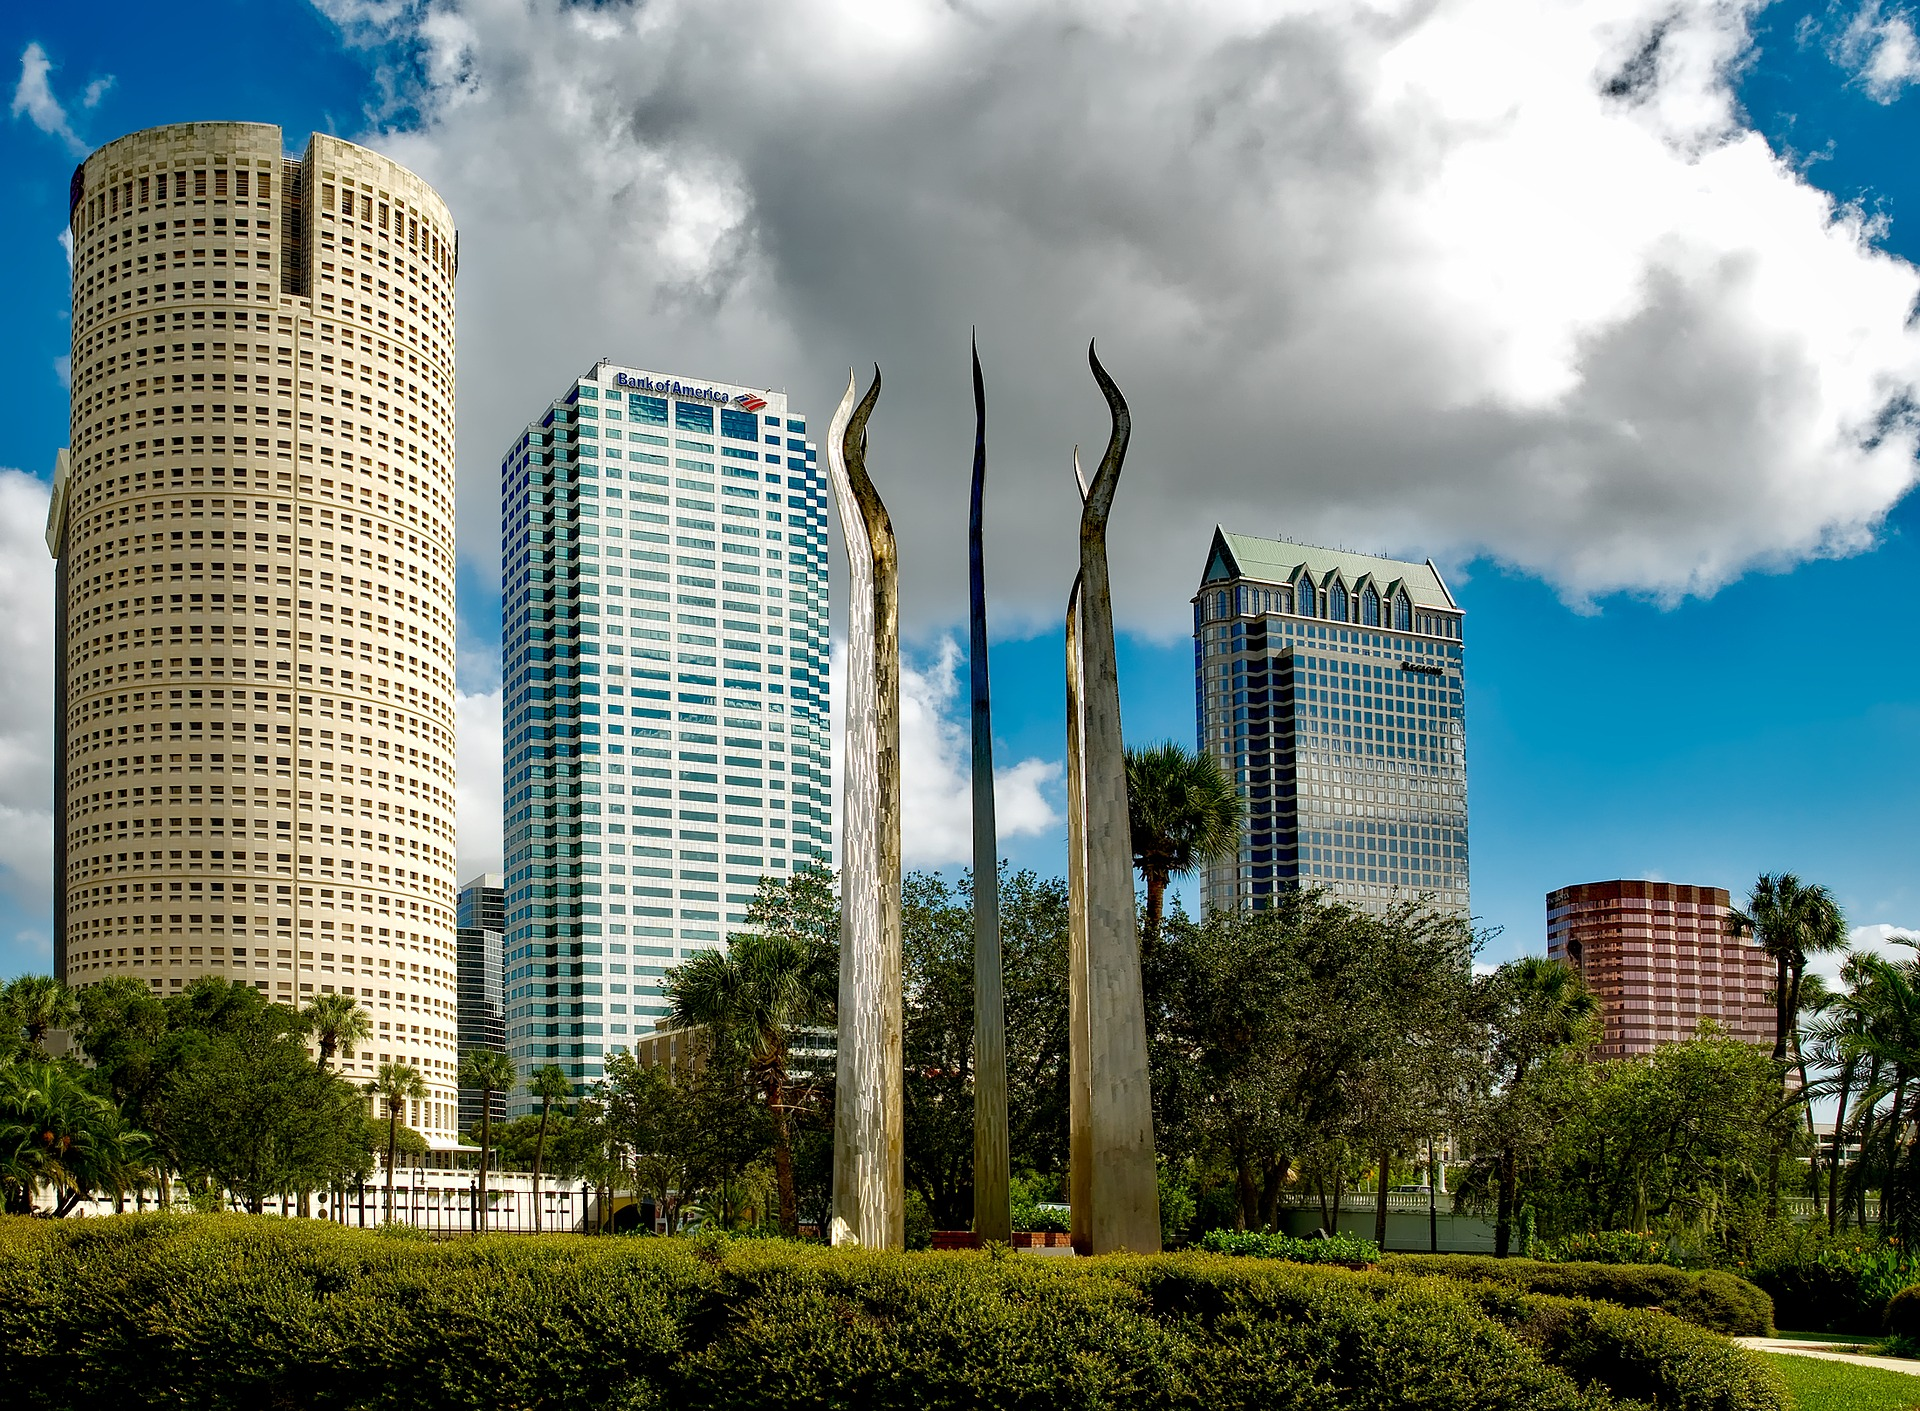 A local's guide to Tampa: best attractions in Tampa, where to eat and stay, and tips